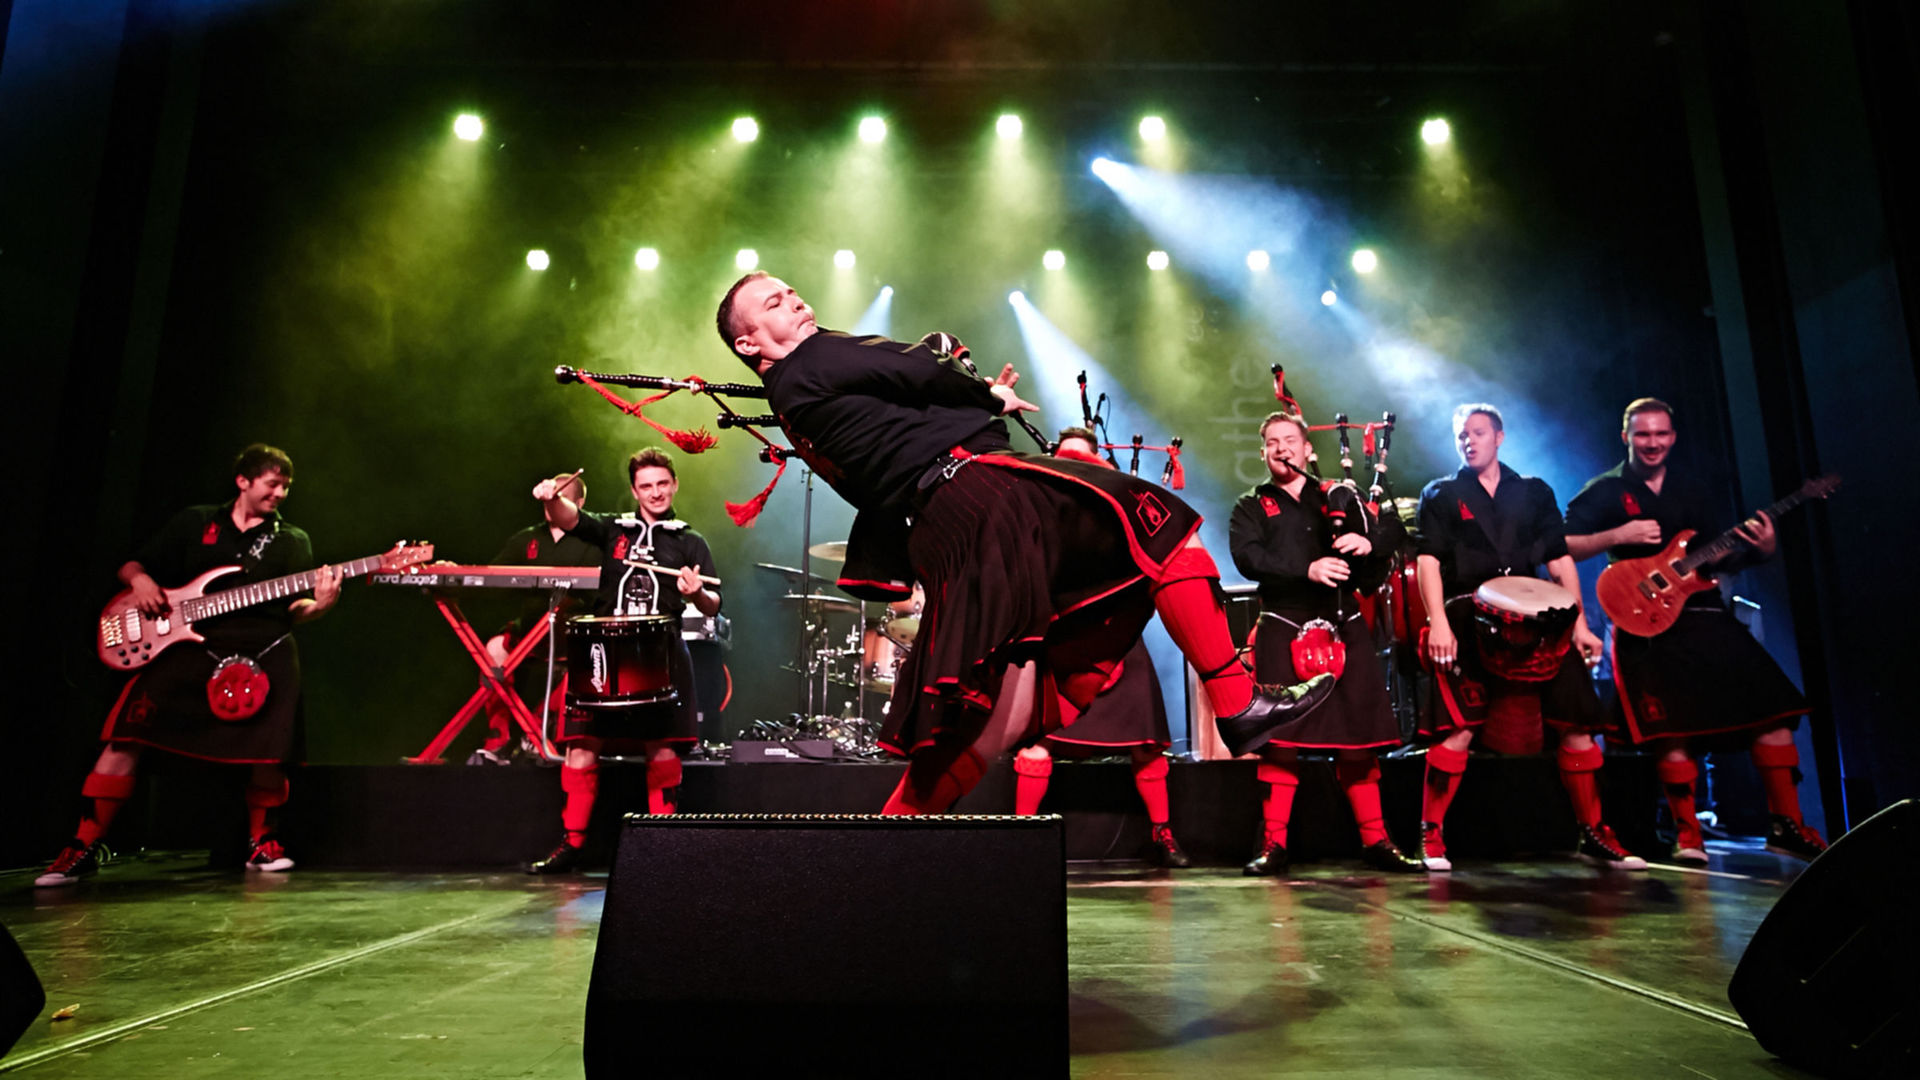 The Red Hot Chilli Pipers Tour